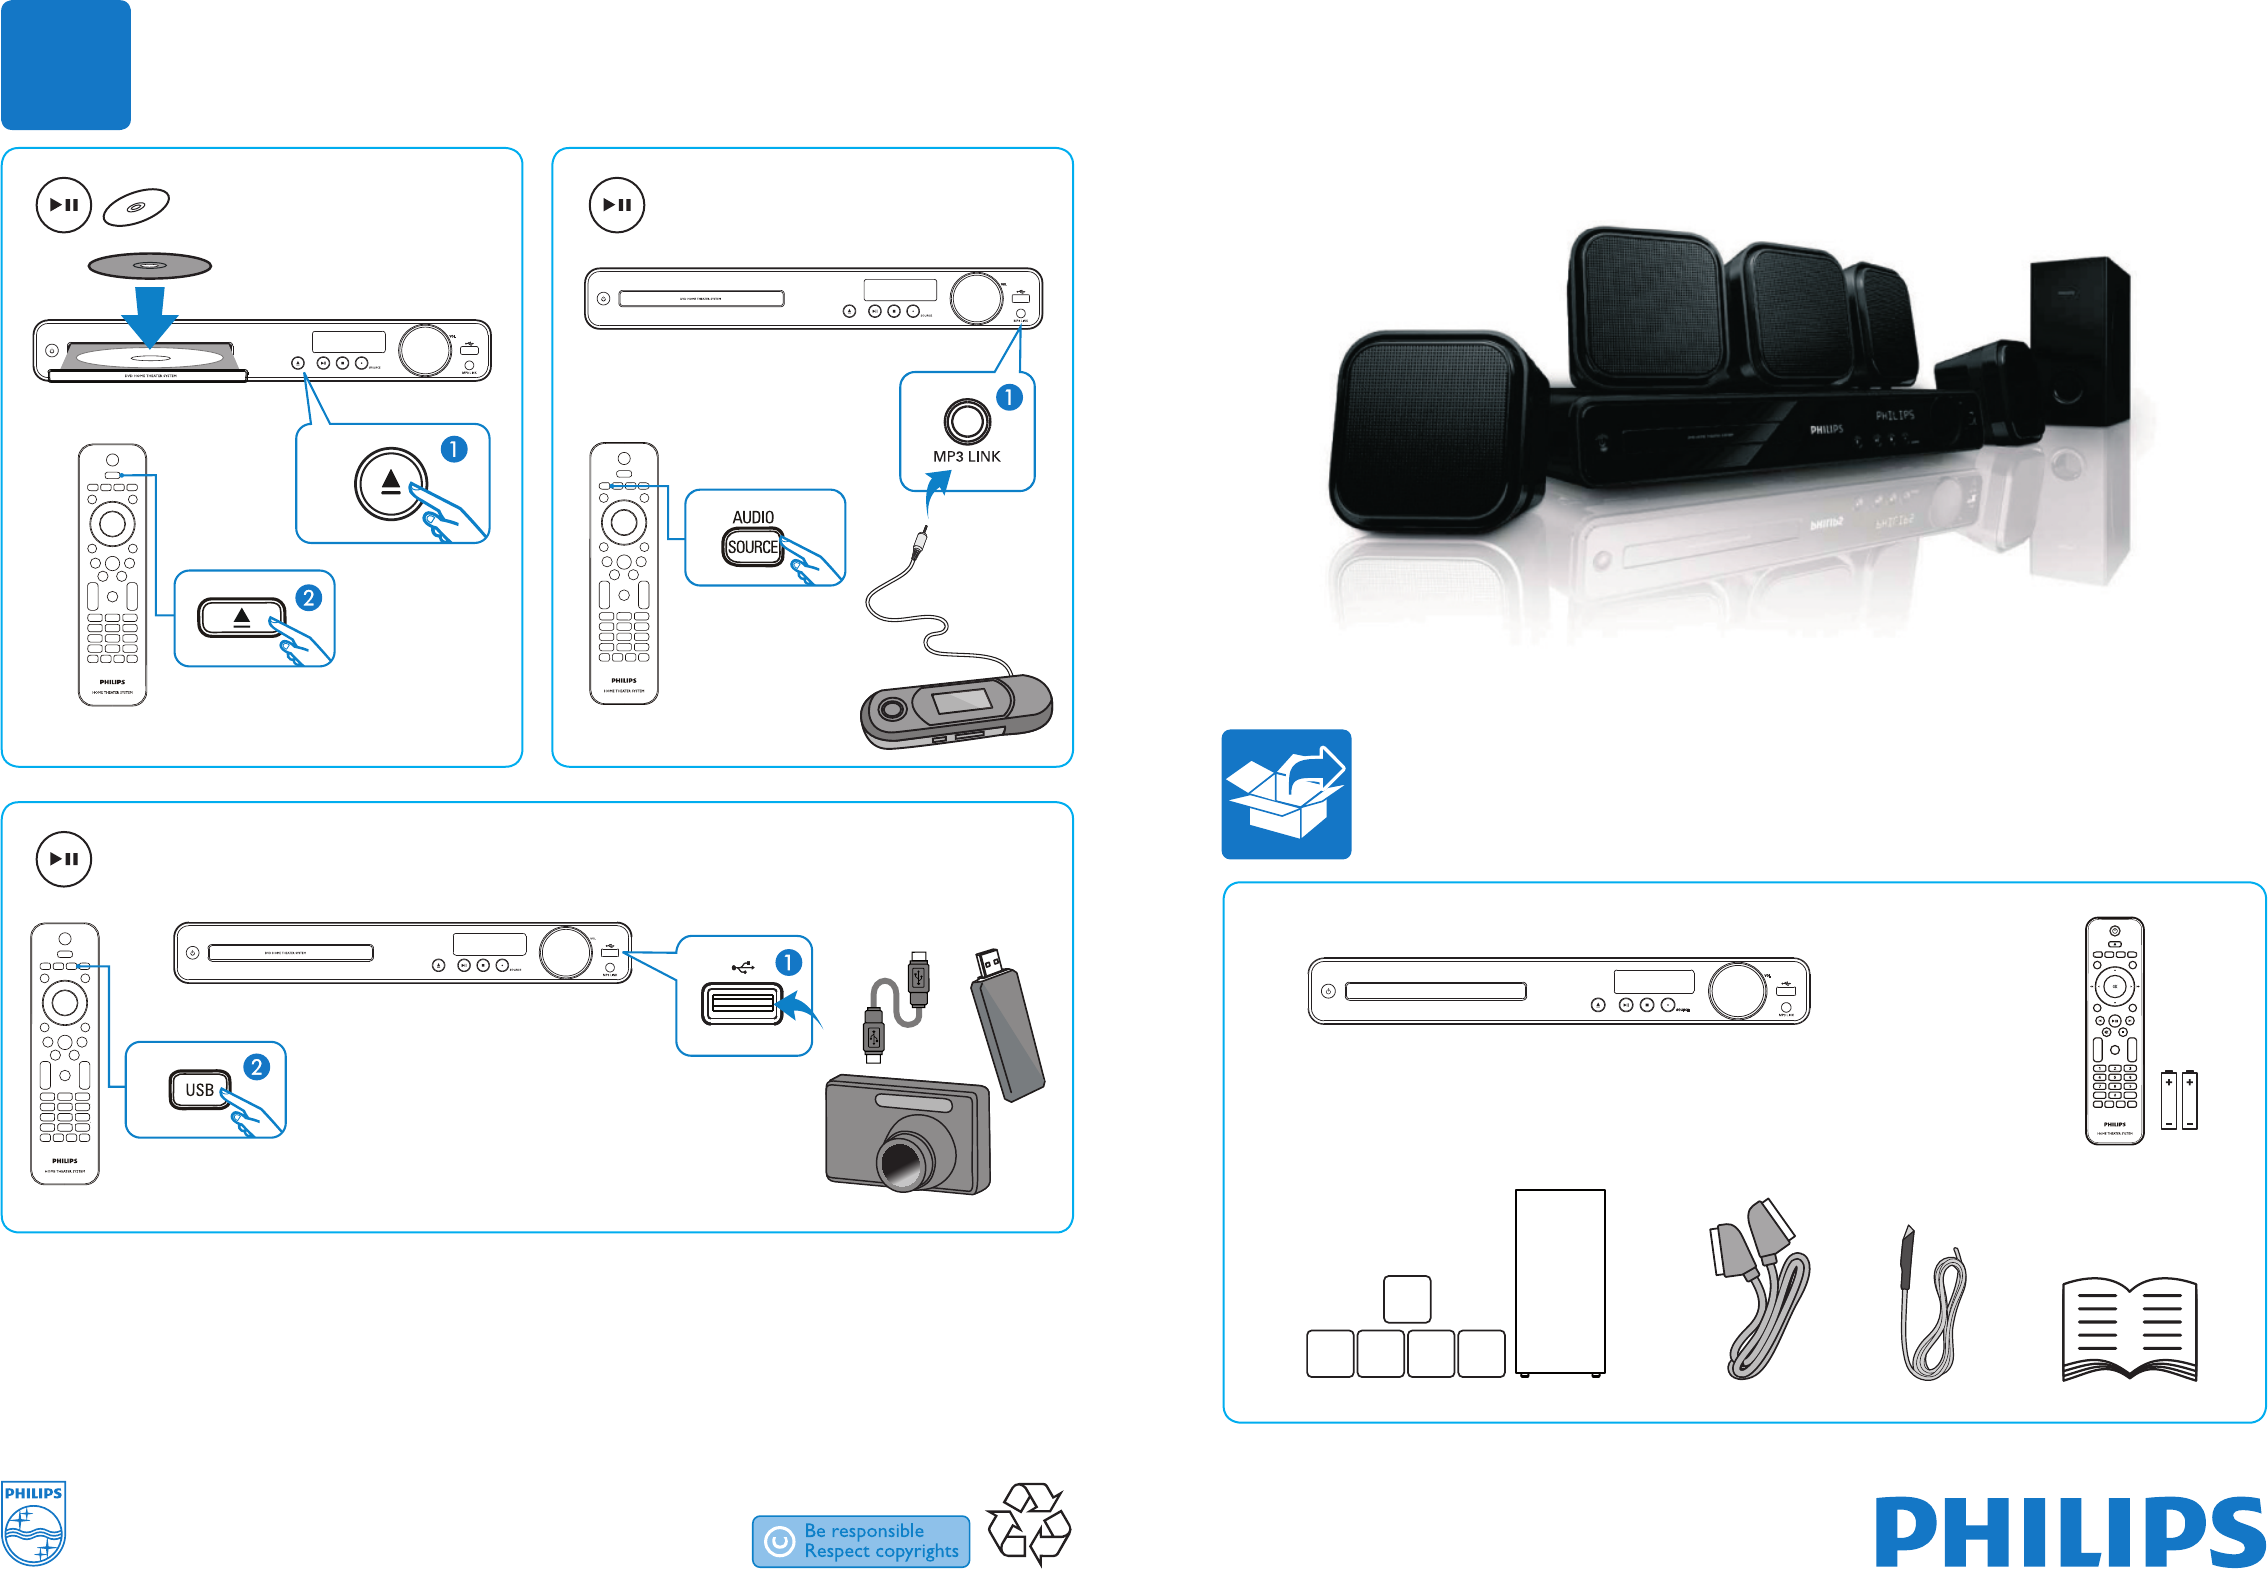 philips home theater system hts3269 12 user guide manualsonline com rh manualsonline com